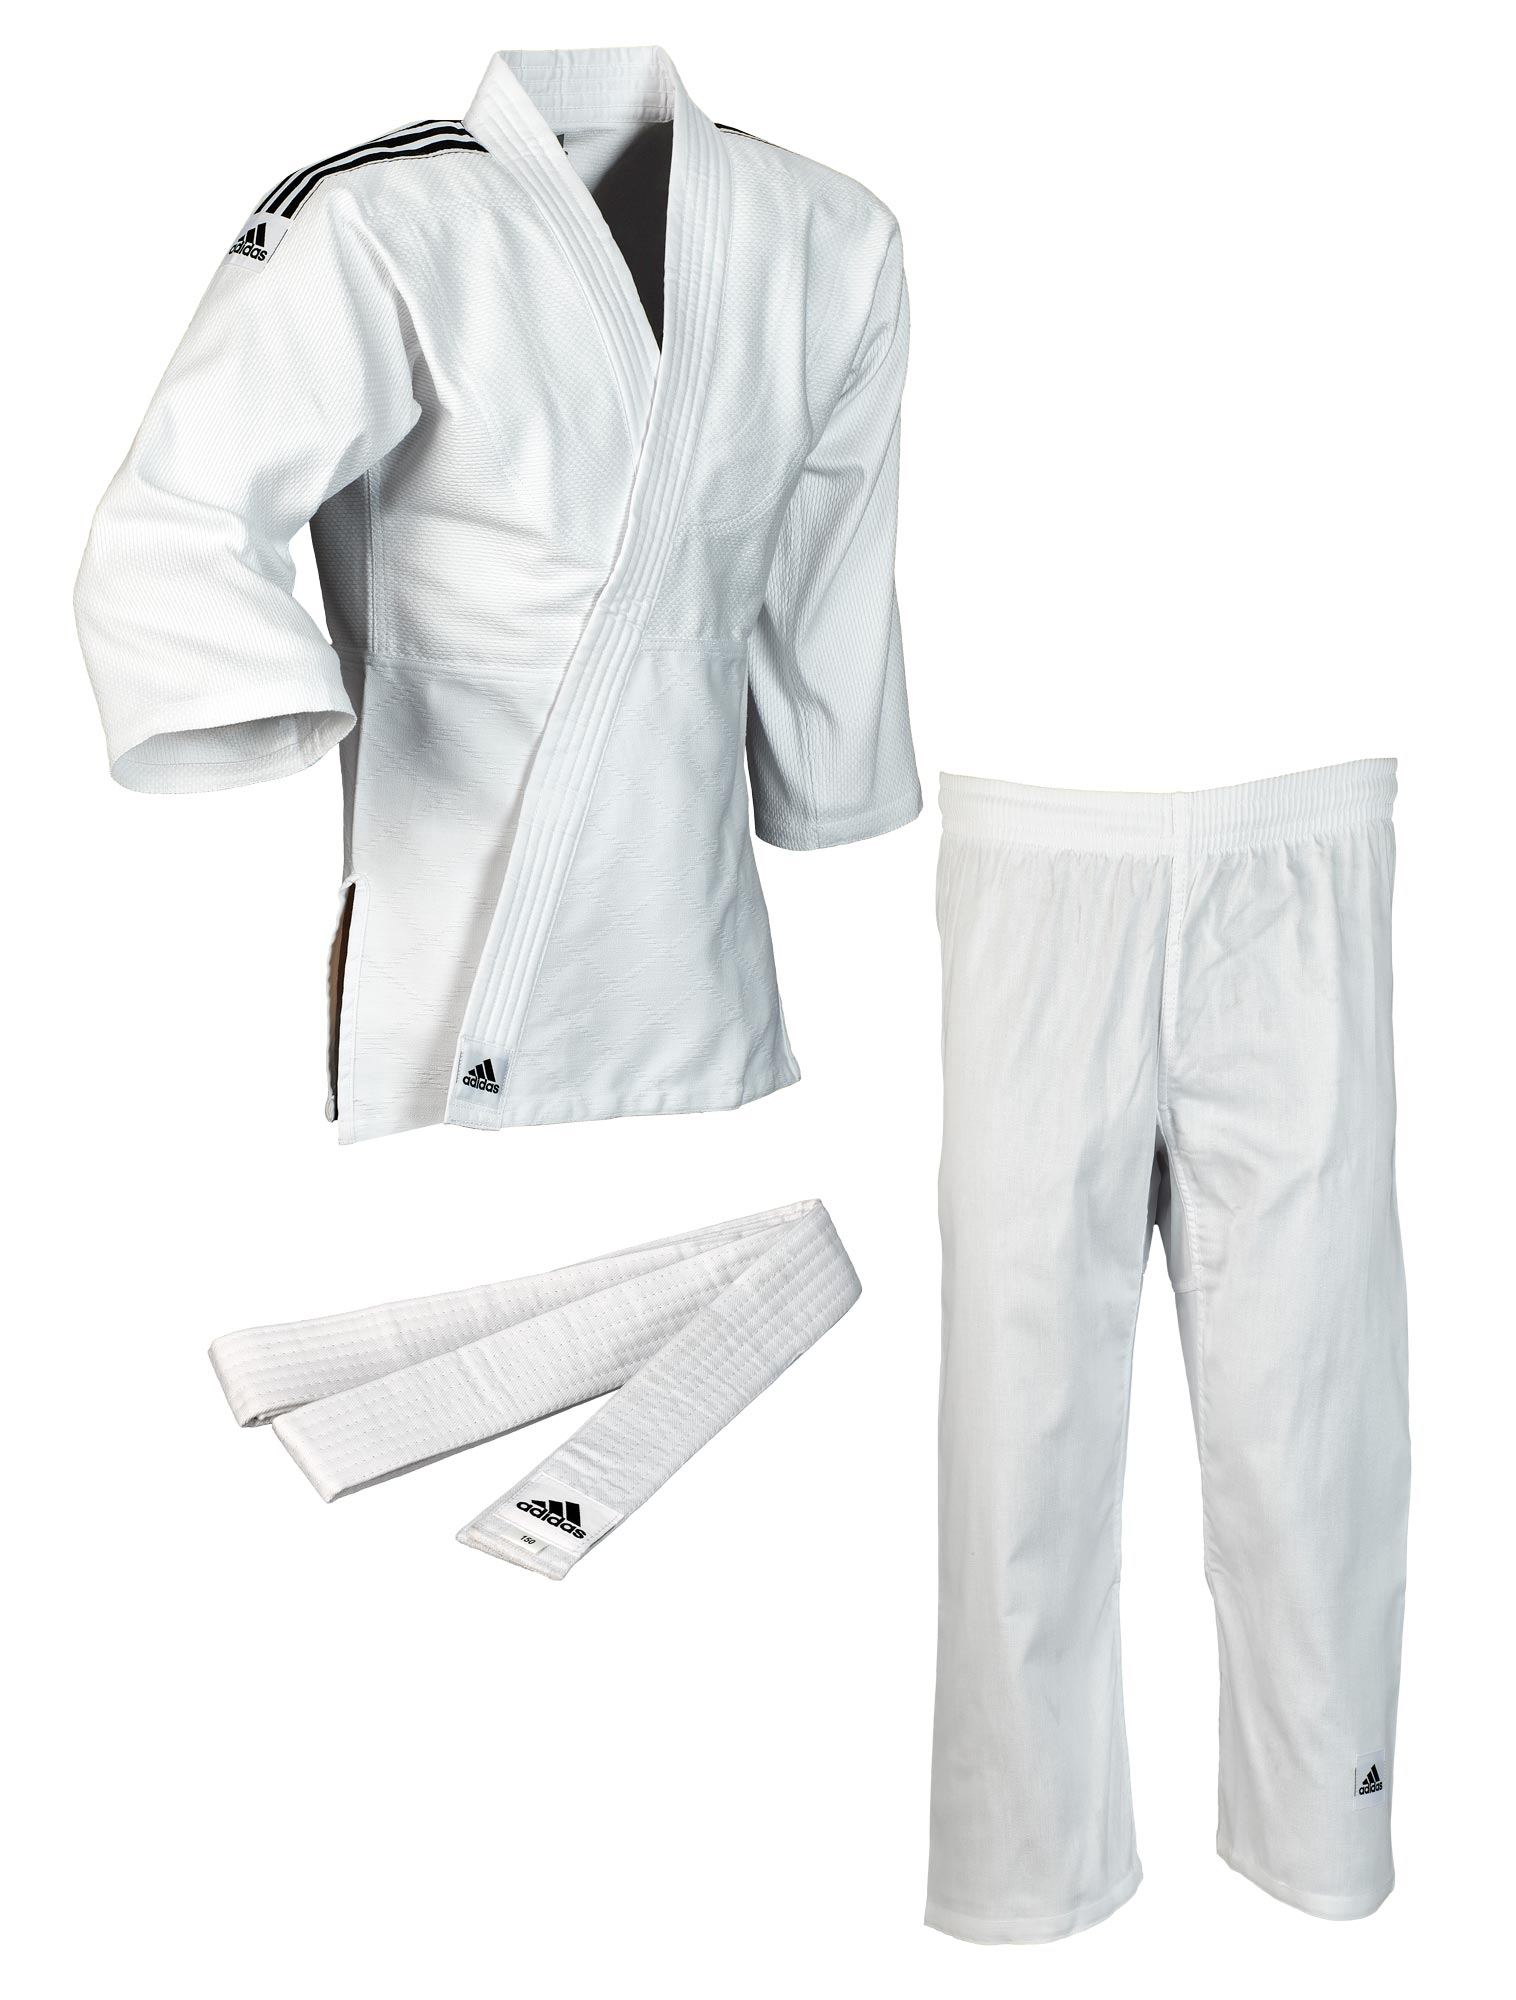 J350 Club Gi White & Black Stripes